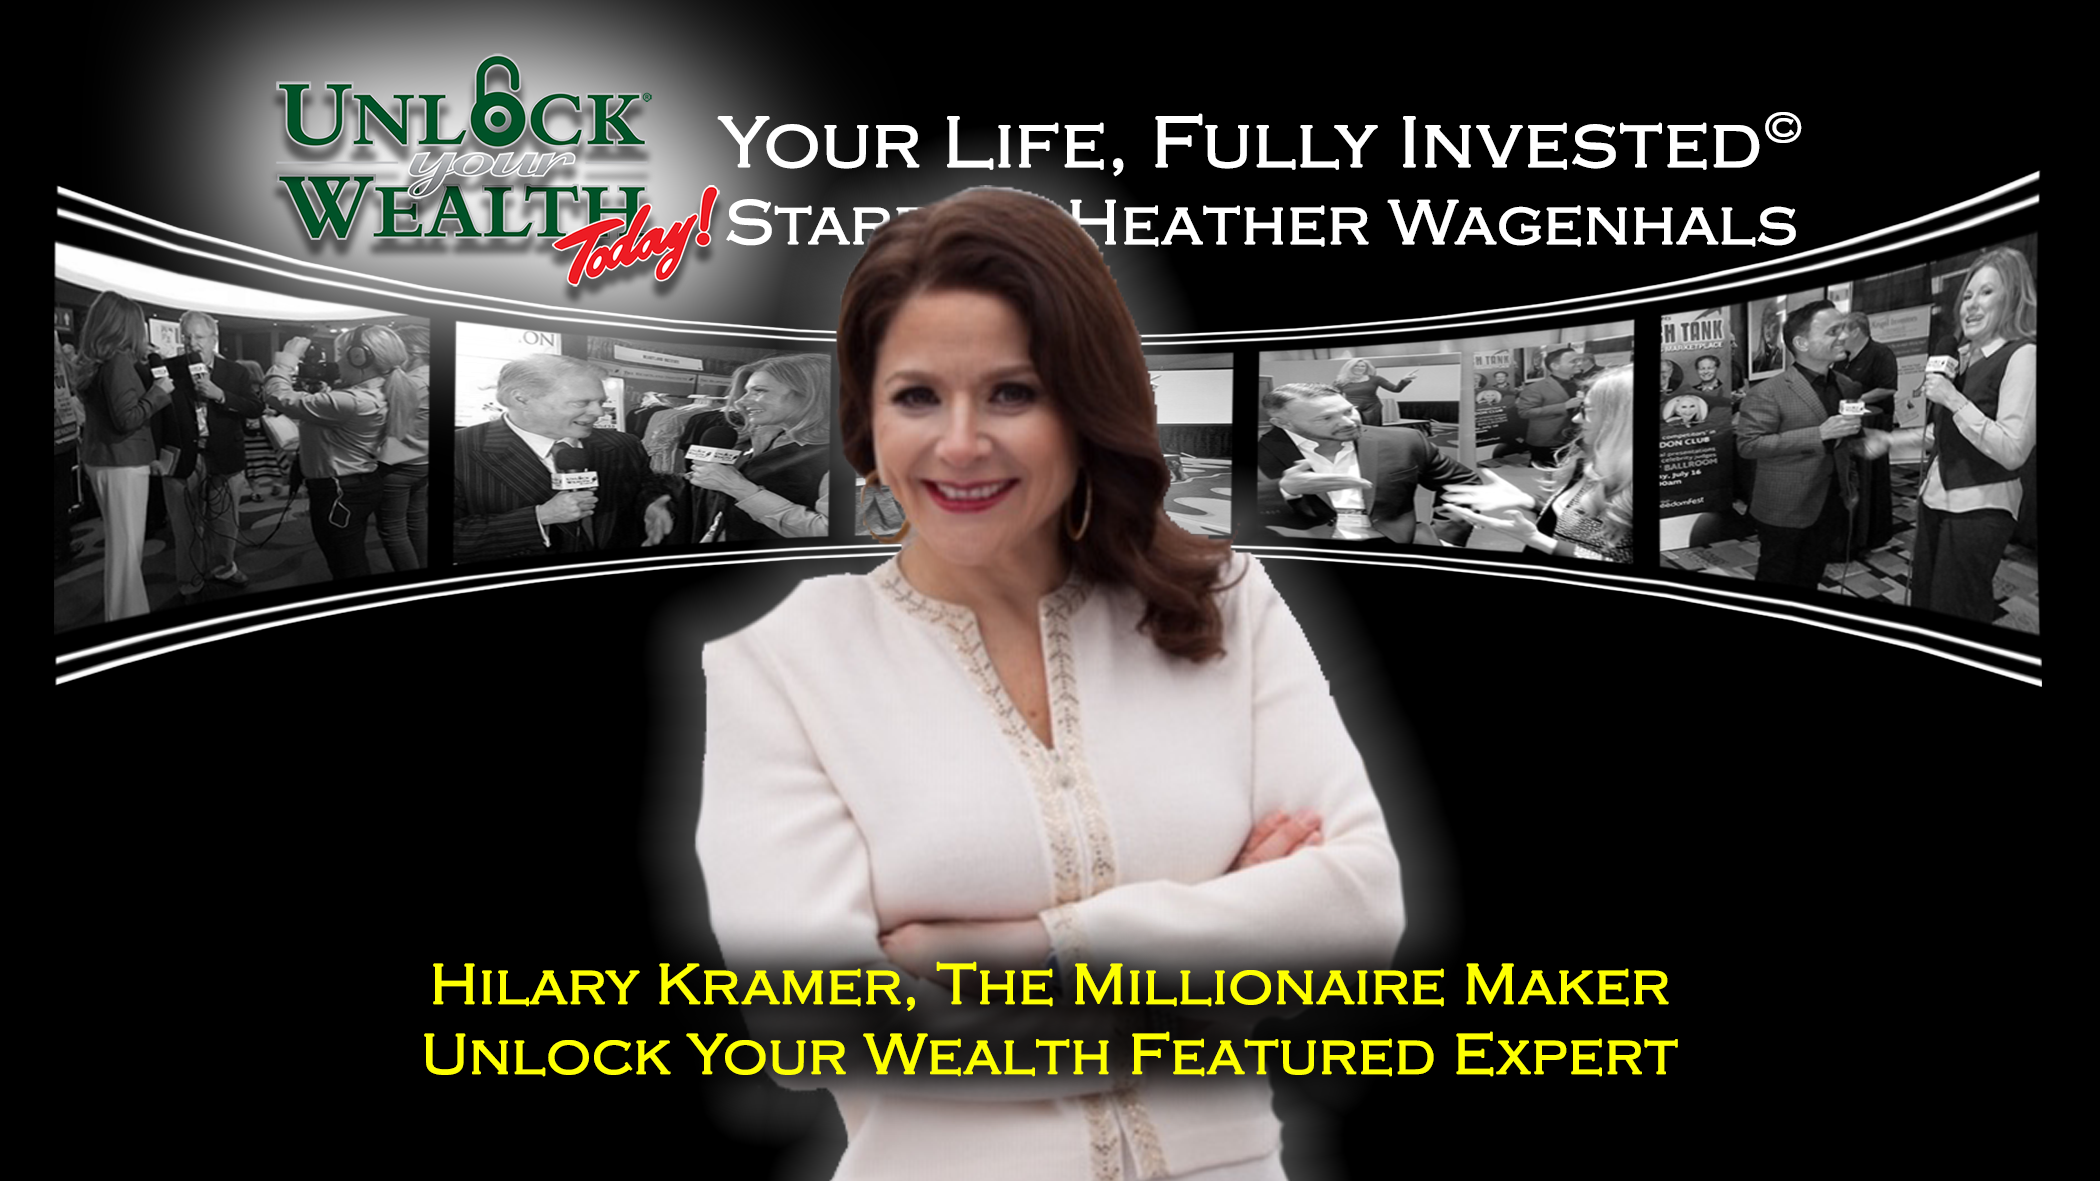 Artwork for FANG Stocks, bankruptcies, Retail Sector and Tech Company Challenges Featuring Hilary Kramer